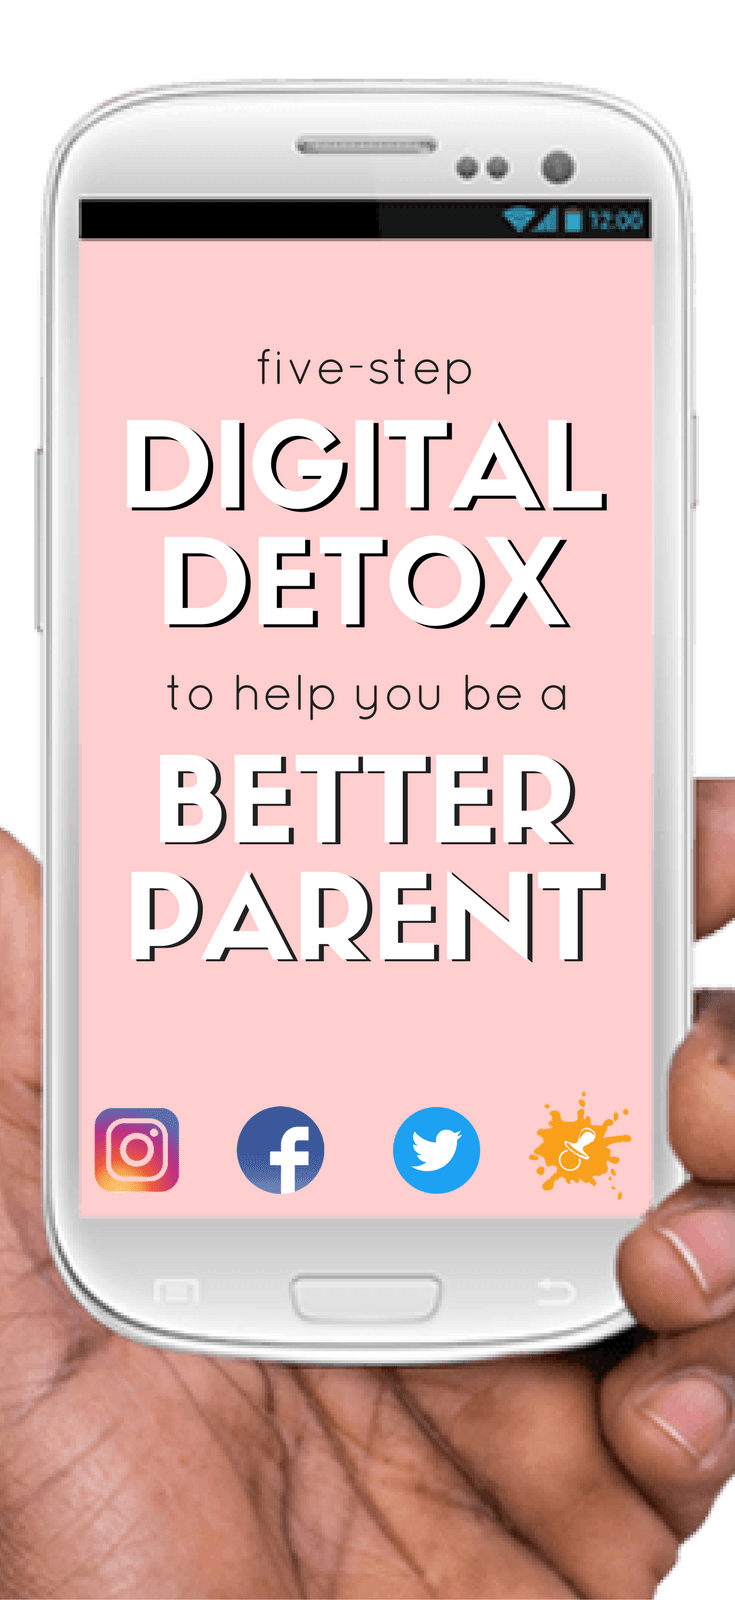 My Child-inspired Digital Detox